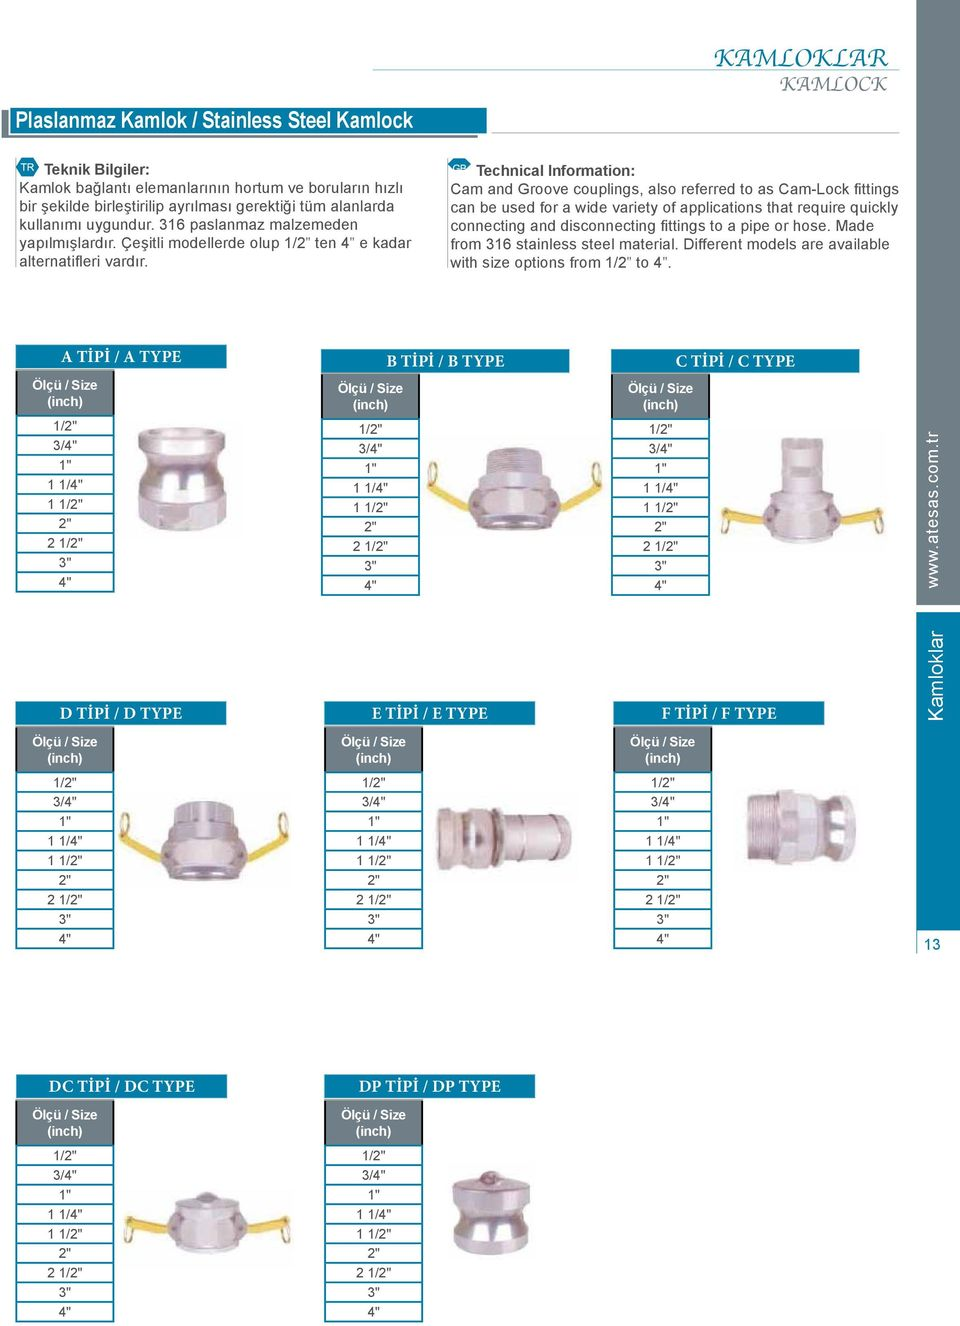 Cam and Groove couplings, also referred to as Cam-Lock fittings can be used for a wide variety of applications that require quickly connecting and disconnecting fittings to a pipe or hose.